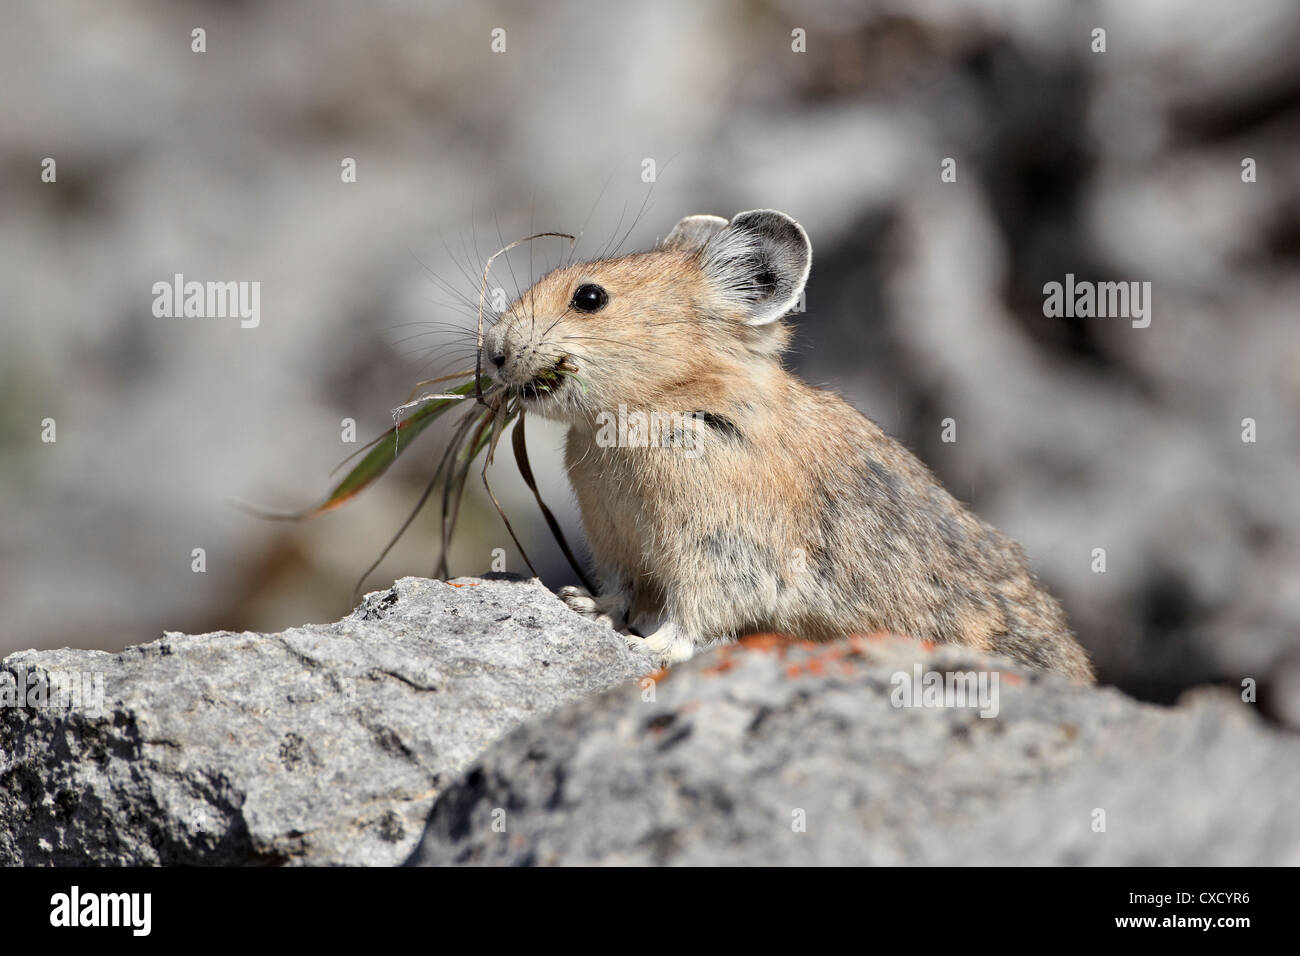 American pika (Ochotona princeps) with food, Jasper National Park, Alberta, Canada, North America - Stock Image